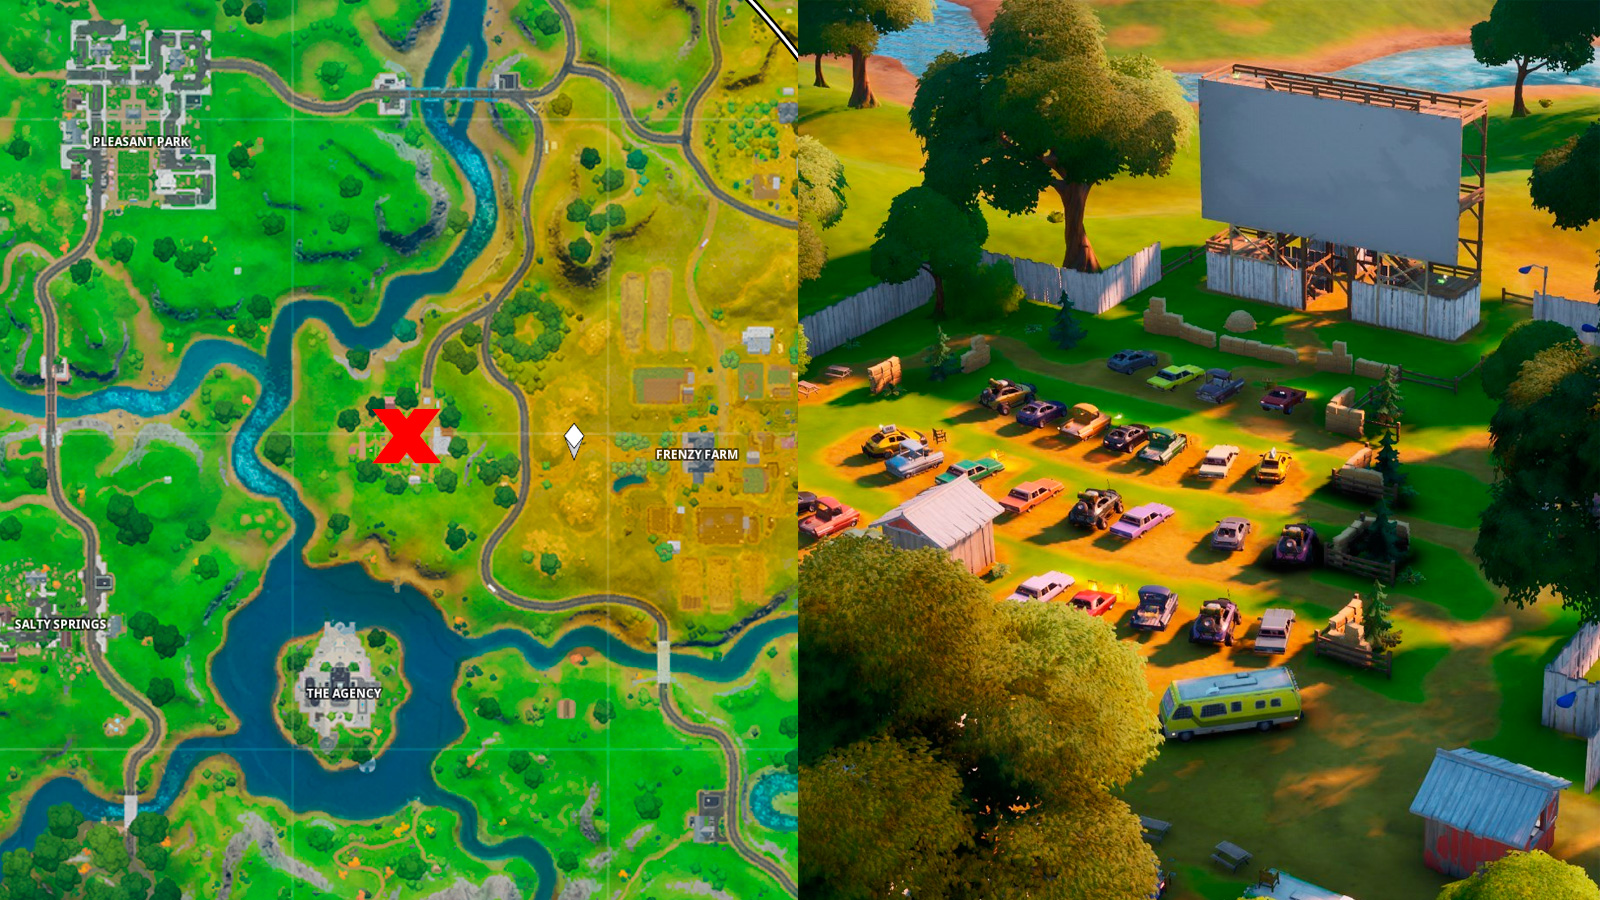 Risky Reels map spot and location in Fortnite.